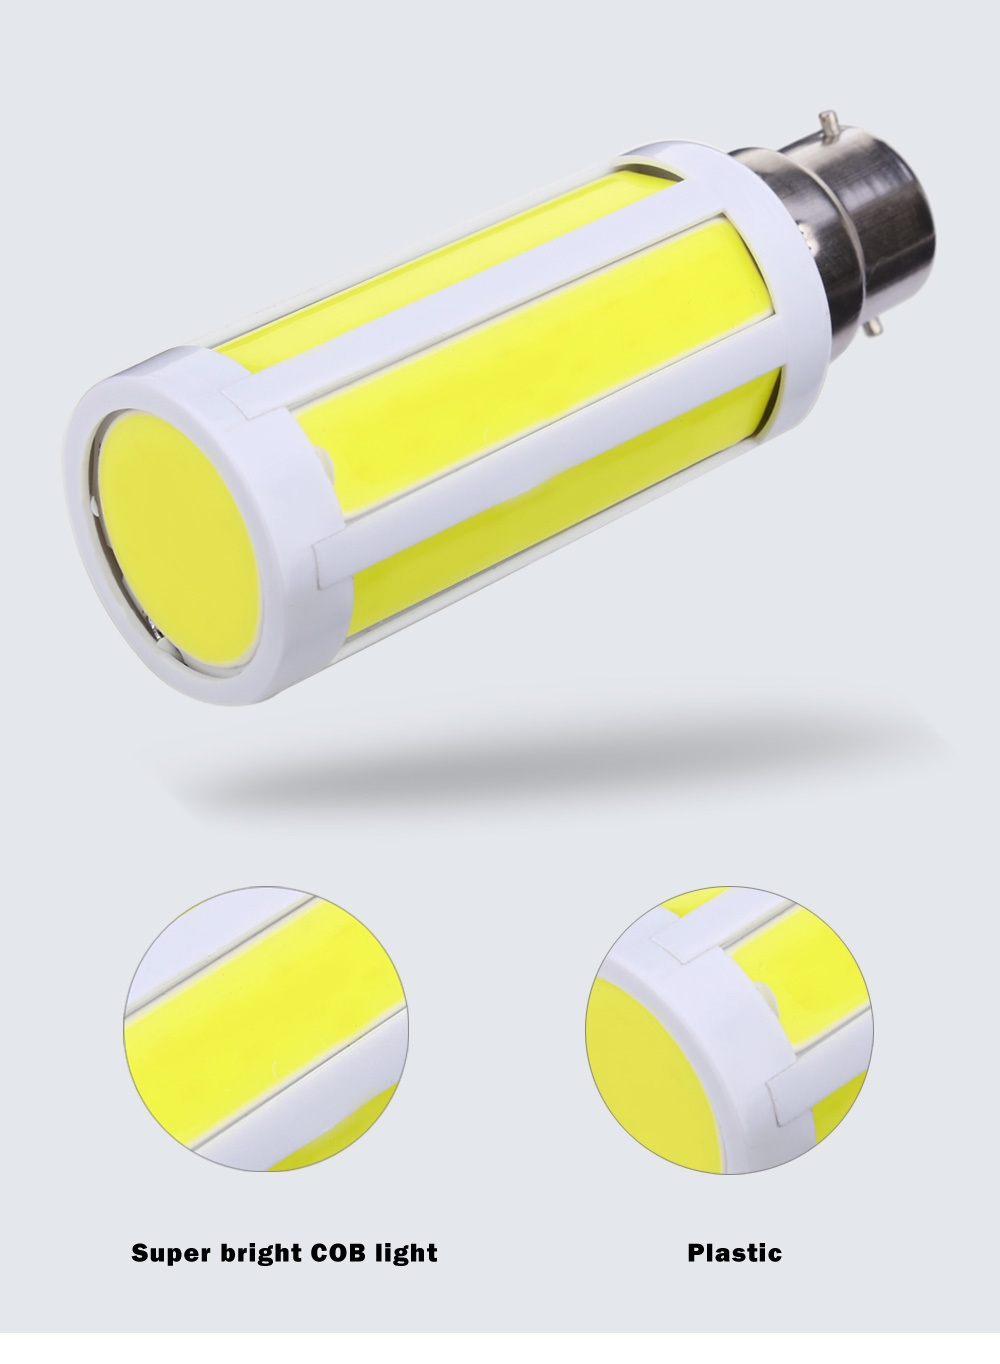 AC 220V B22 7W 600 - 700LM LED COB Corn Bulb Light Energy Saving Lamp